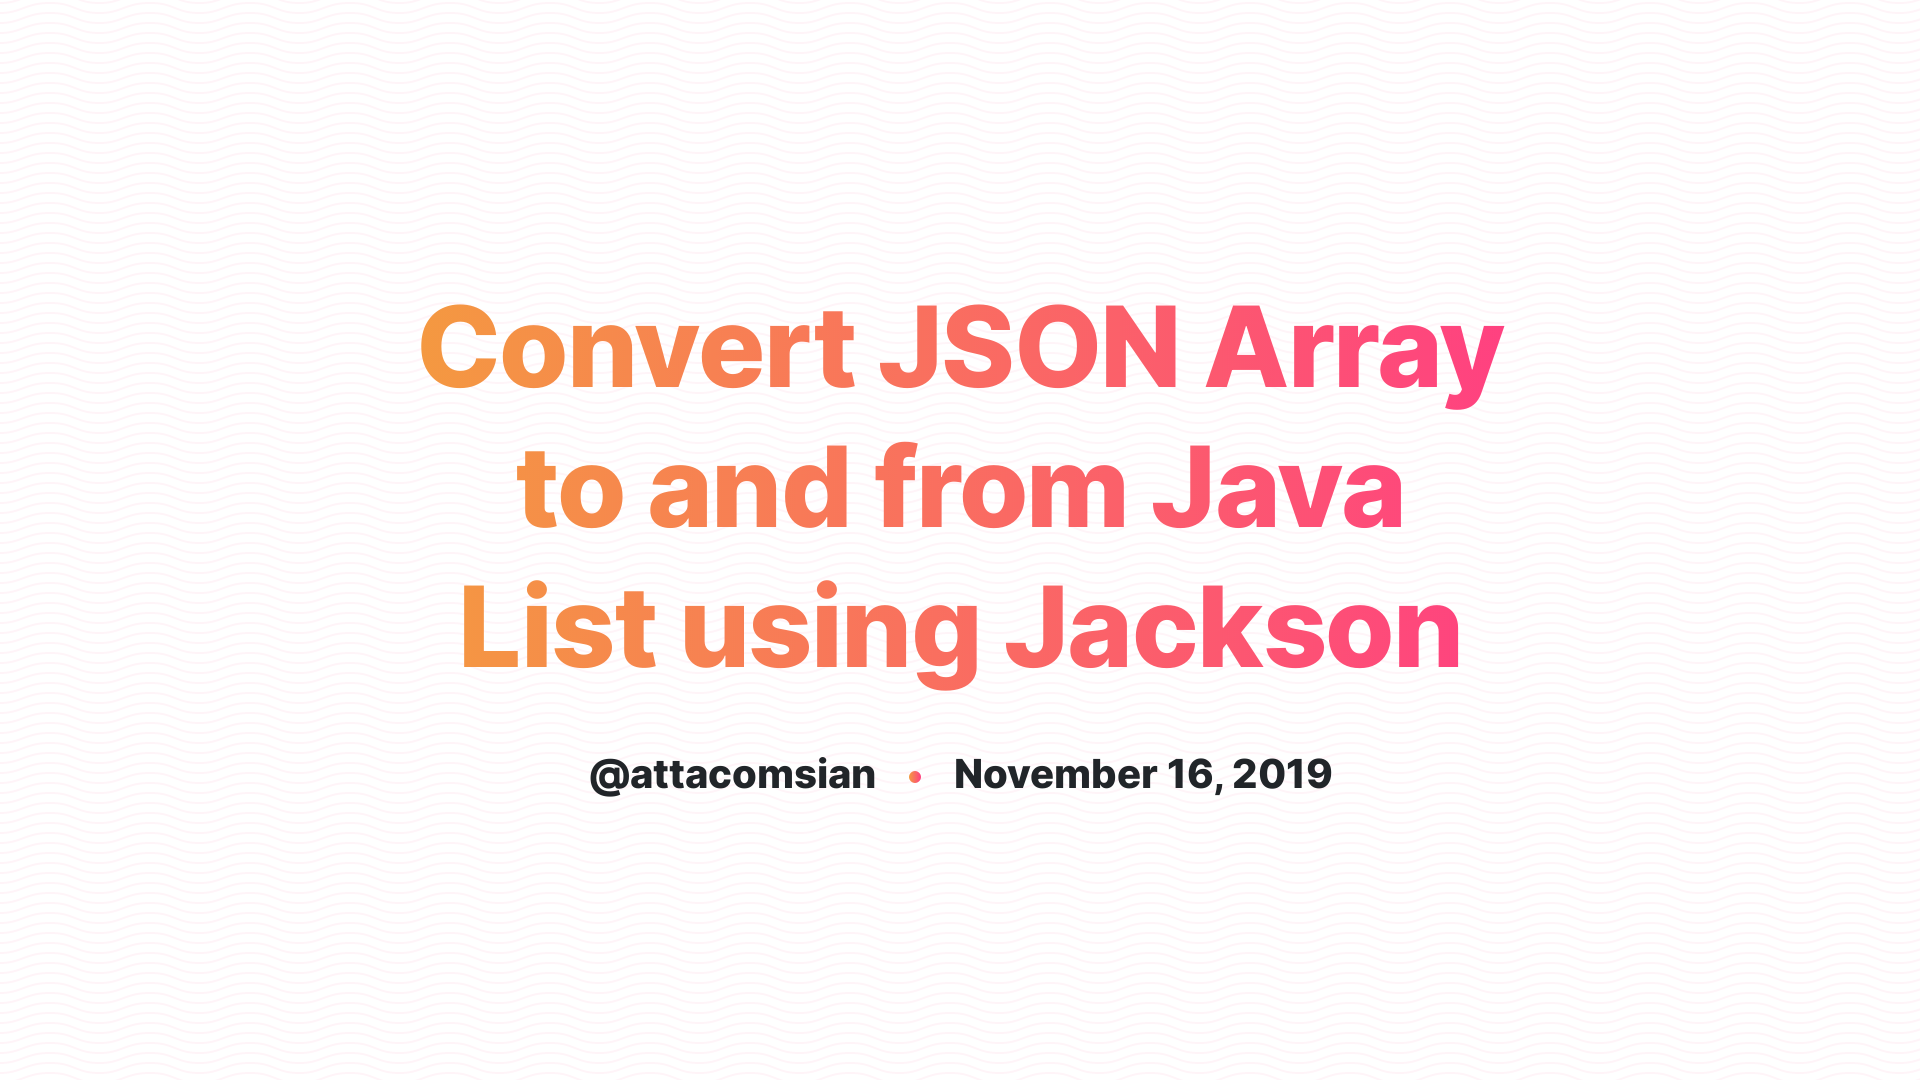 Convert JSON Array to and from Java List using Jackson